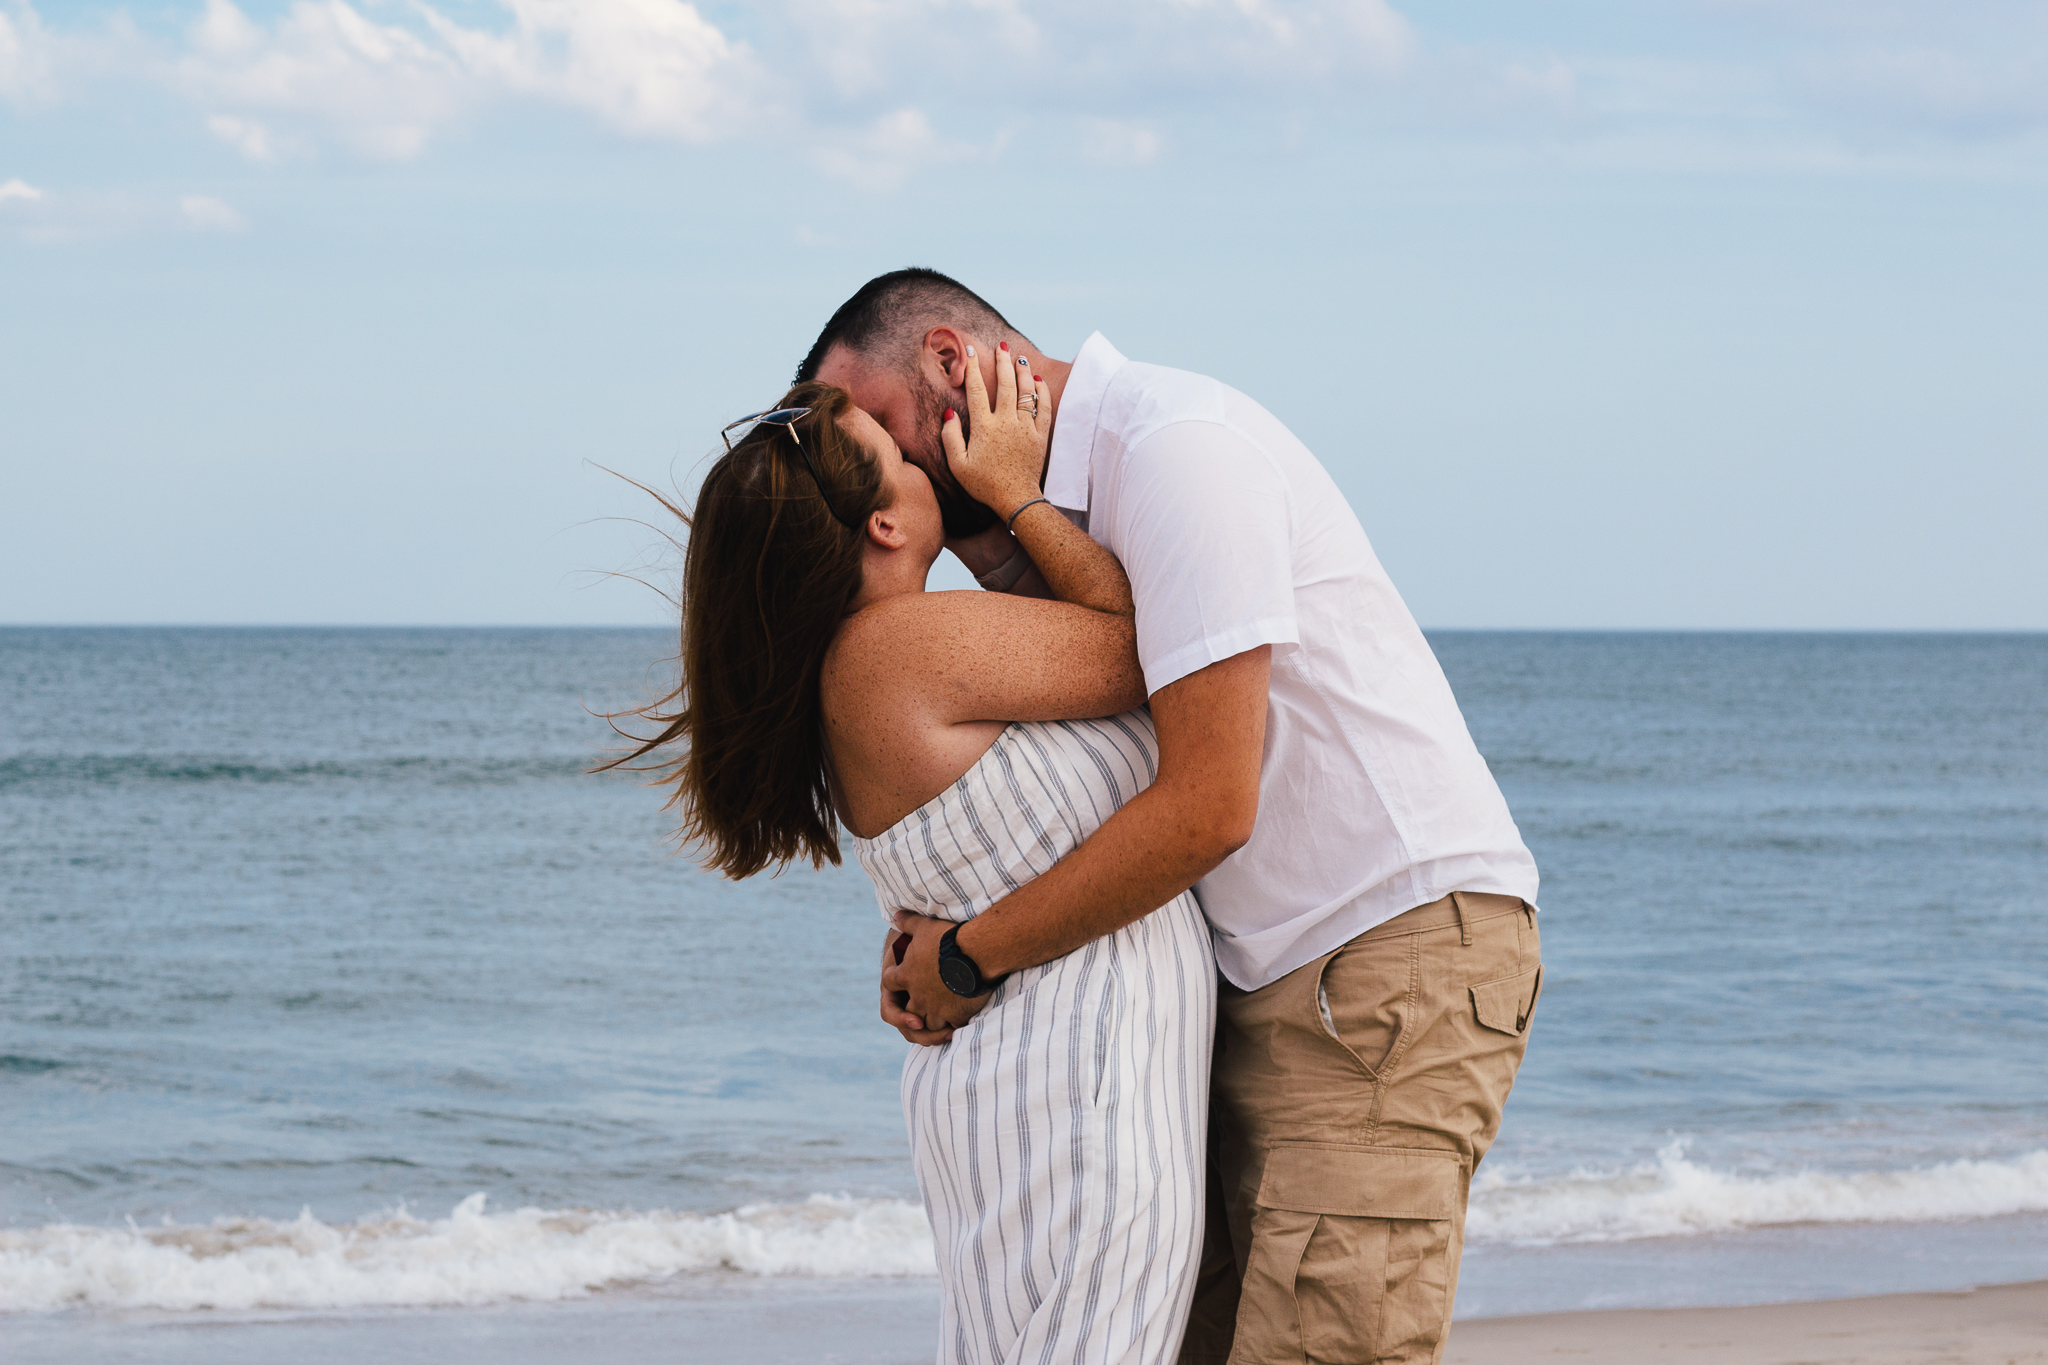 jacqui and shawn_ocean city engagement_caitlinelizabethjames-56.jpg